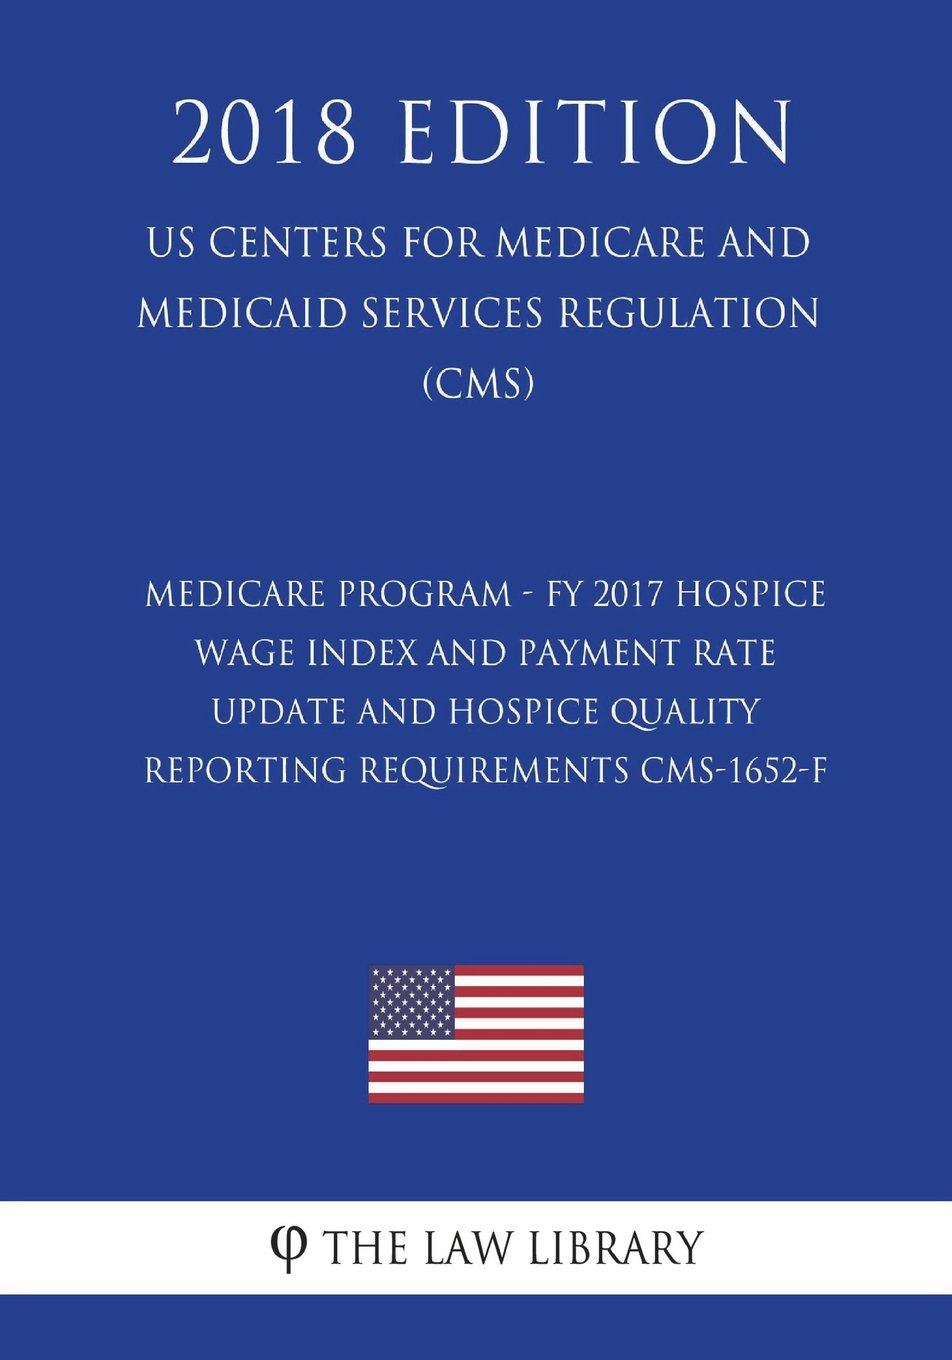 Medicare Program - FY 2017 Hospice Wage Index and Payment Rate Update and Hospice Quality Reporting Requirements CMS-1652-F (US Centers for Medicare ... Services Regulation) (CMS) (2018 Edition) PDF